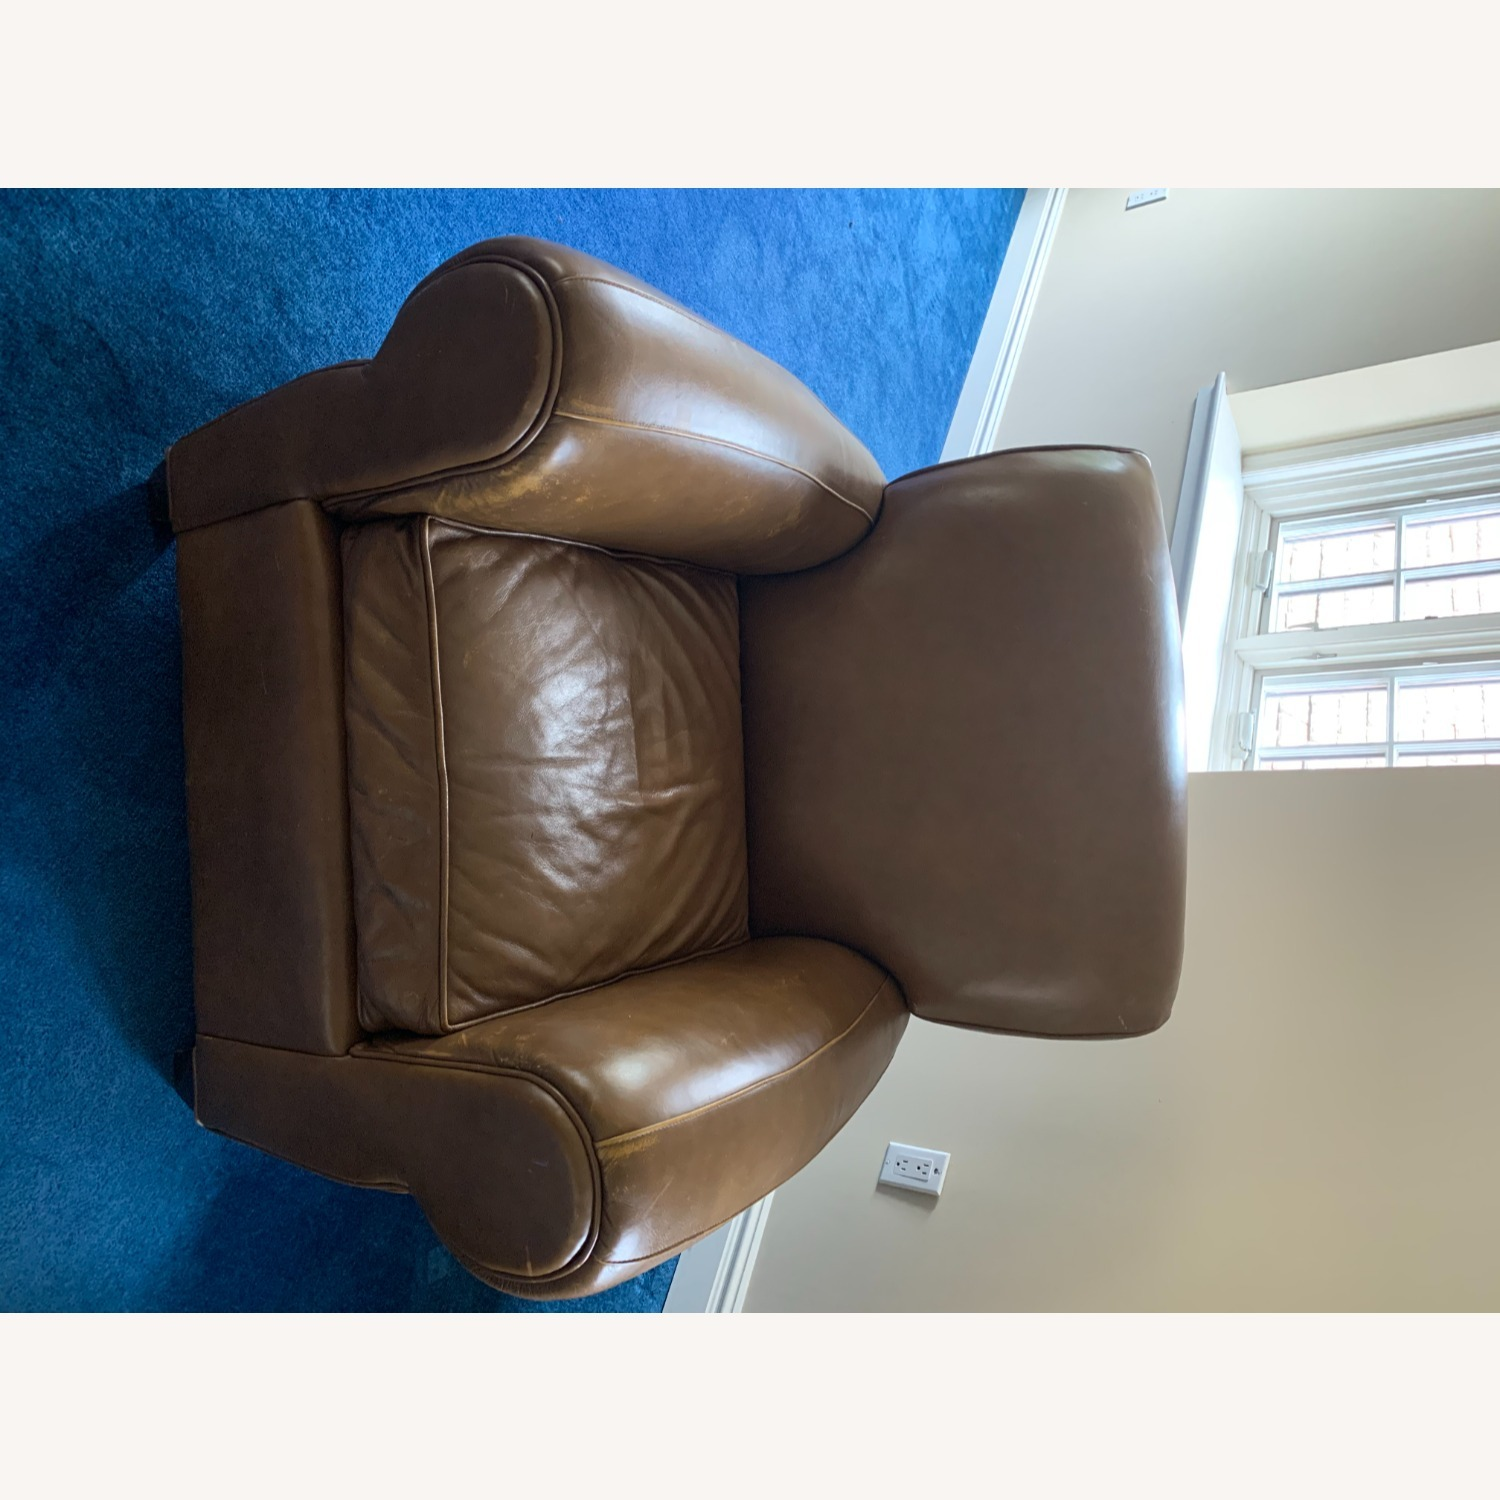 Pottery Barn Leather Armchair - image-10